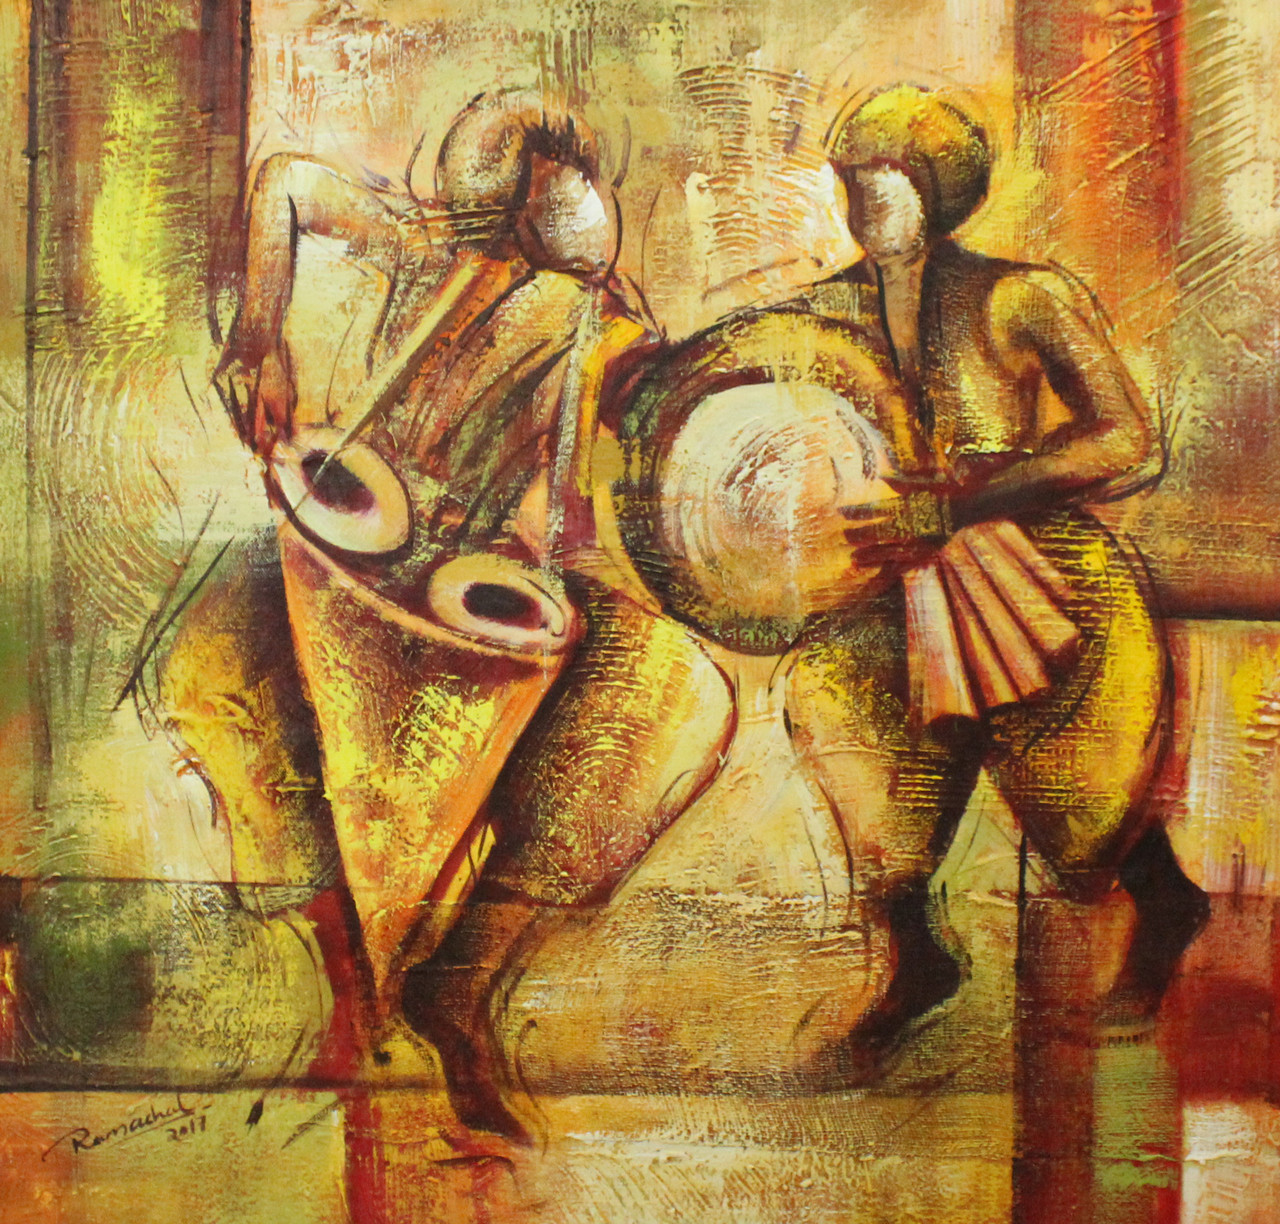 Buy indian musical art 07 handmade painting by ram achal for Buy art online india